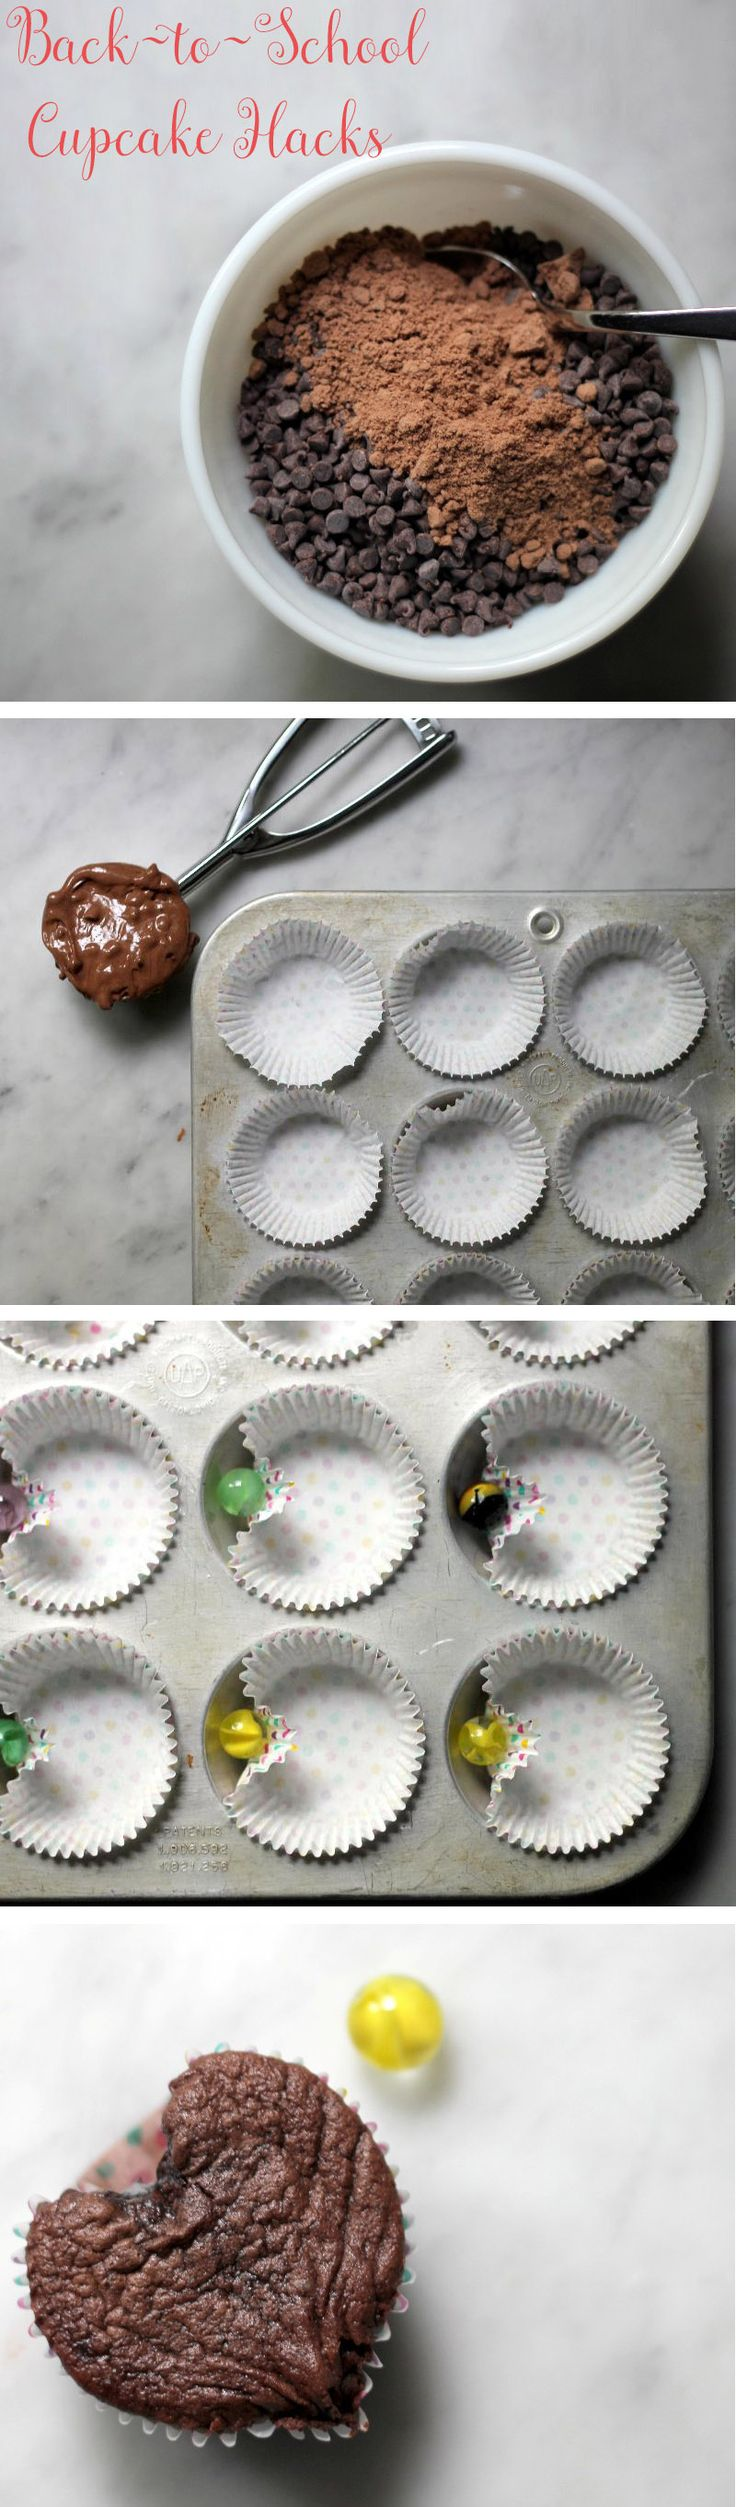 This may be our yummiest hack ever! Back-to-school means back to bake sales, so we're here to help make your life a little easier with these cupcake hacks.